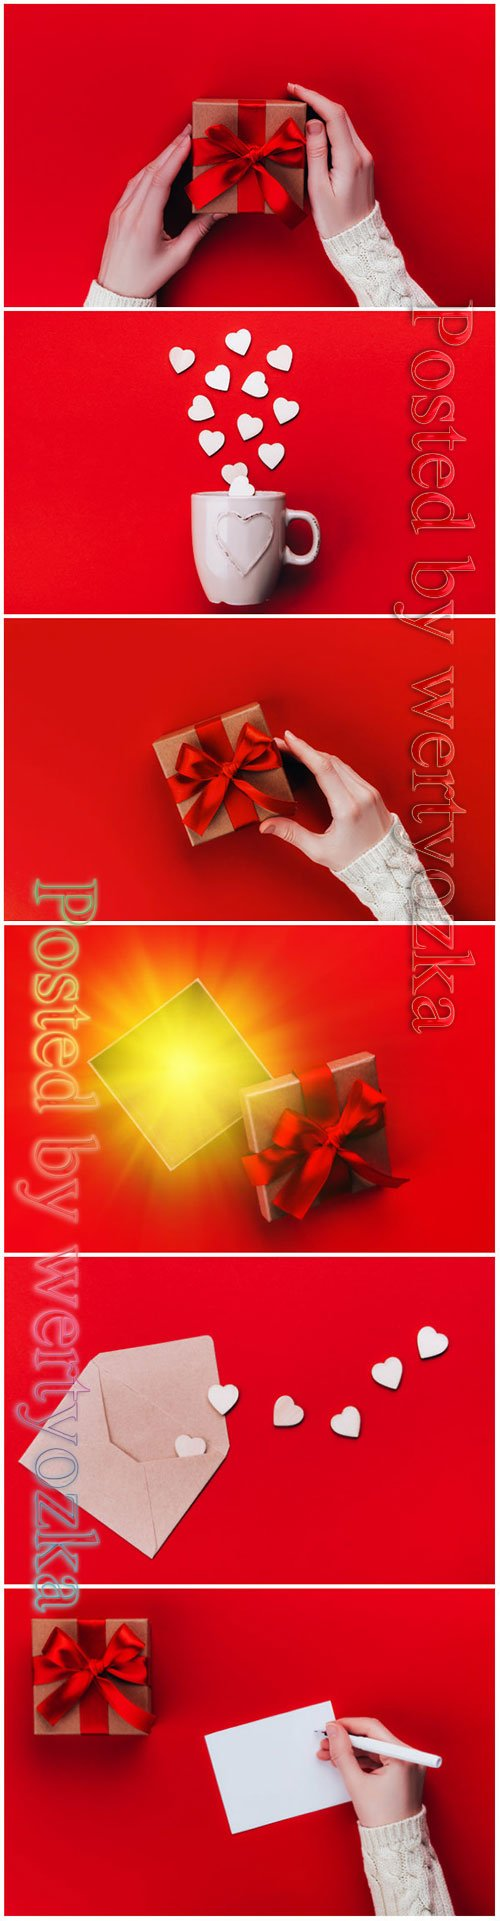 Valentines day greeting card beautiful stock photo